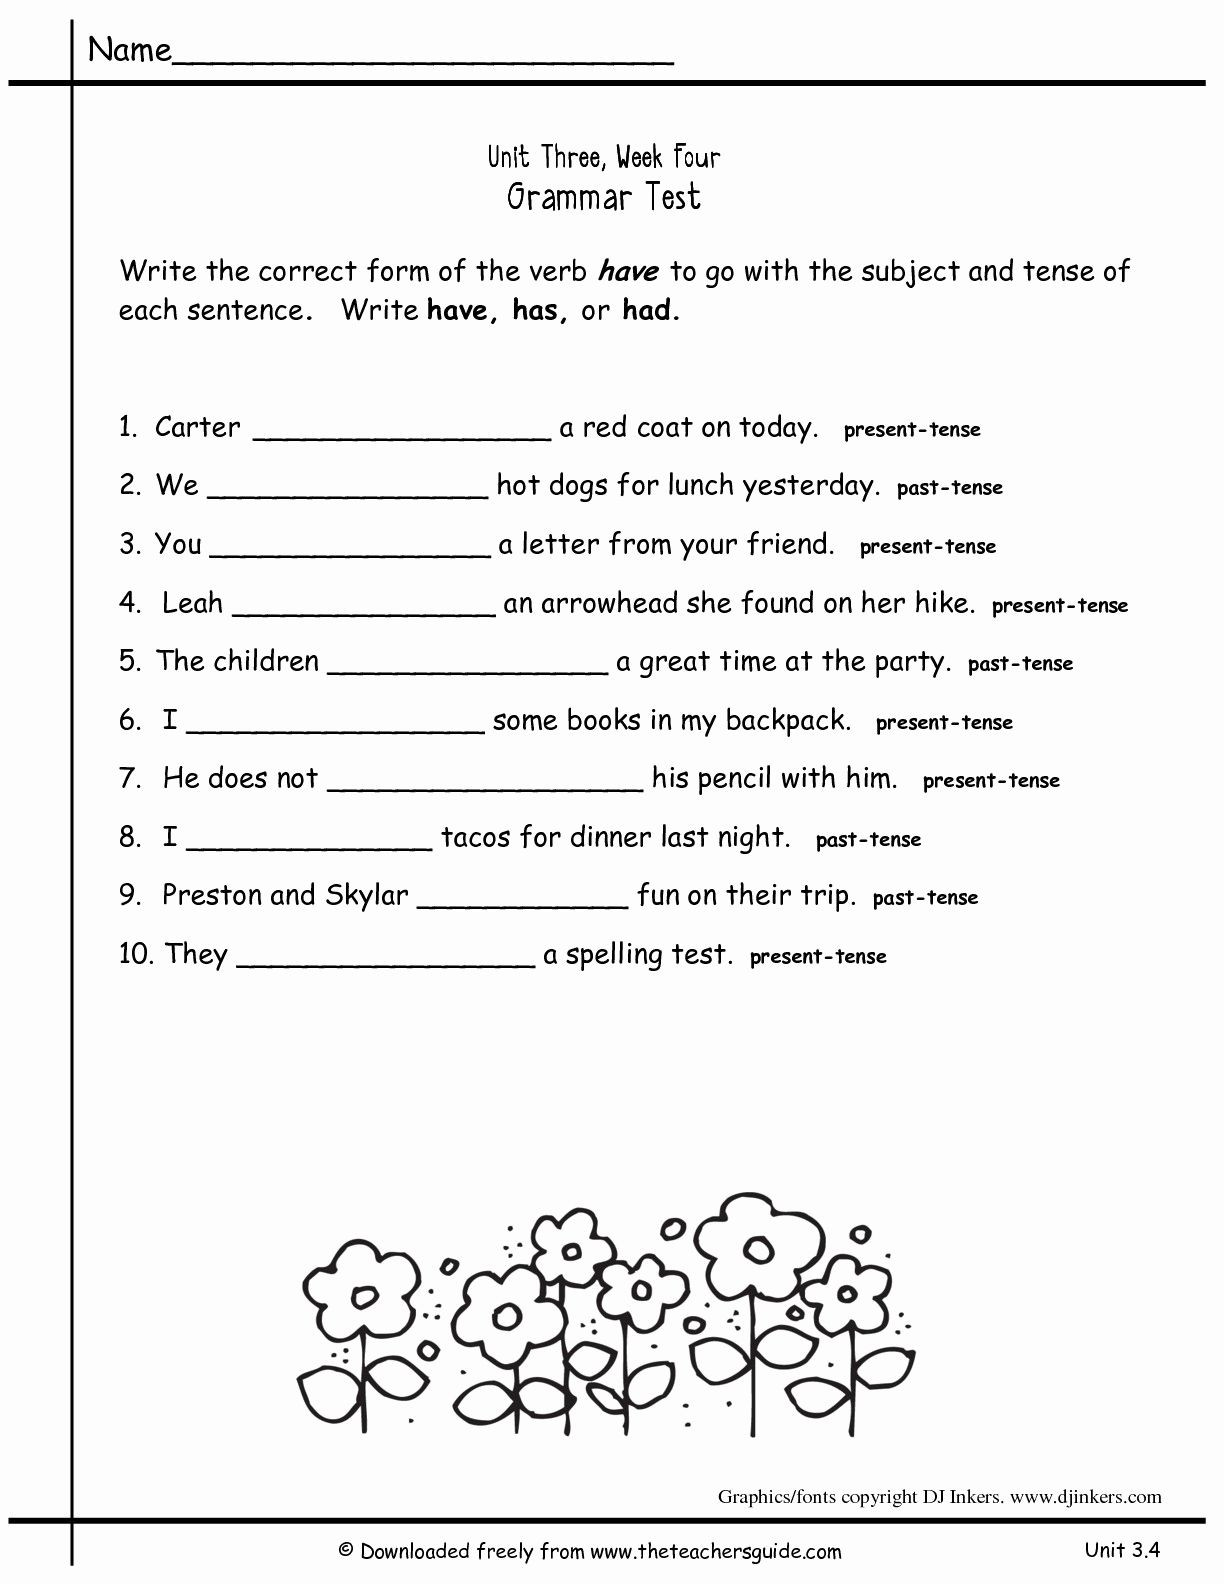 Grammar Worksheets Middle School Pdf 2nd Grade Grammar Worksheets Pdf New Worksheets for All